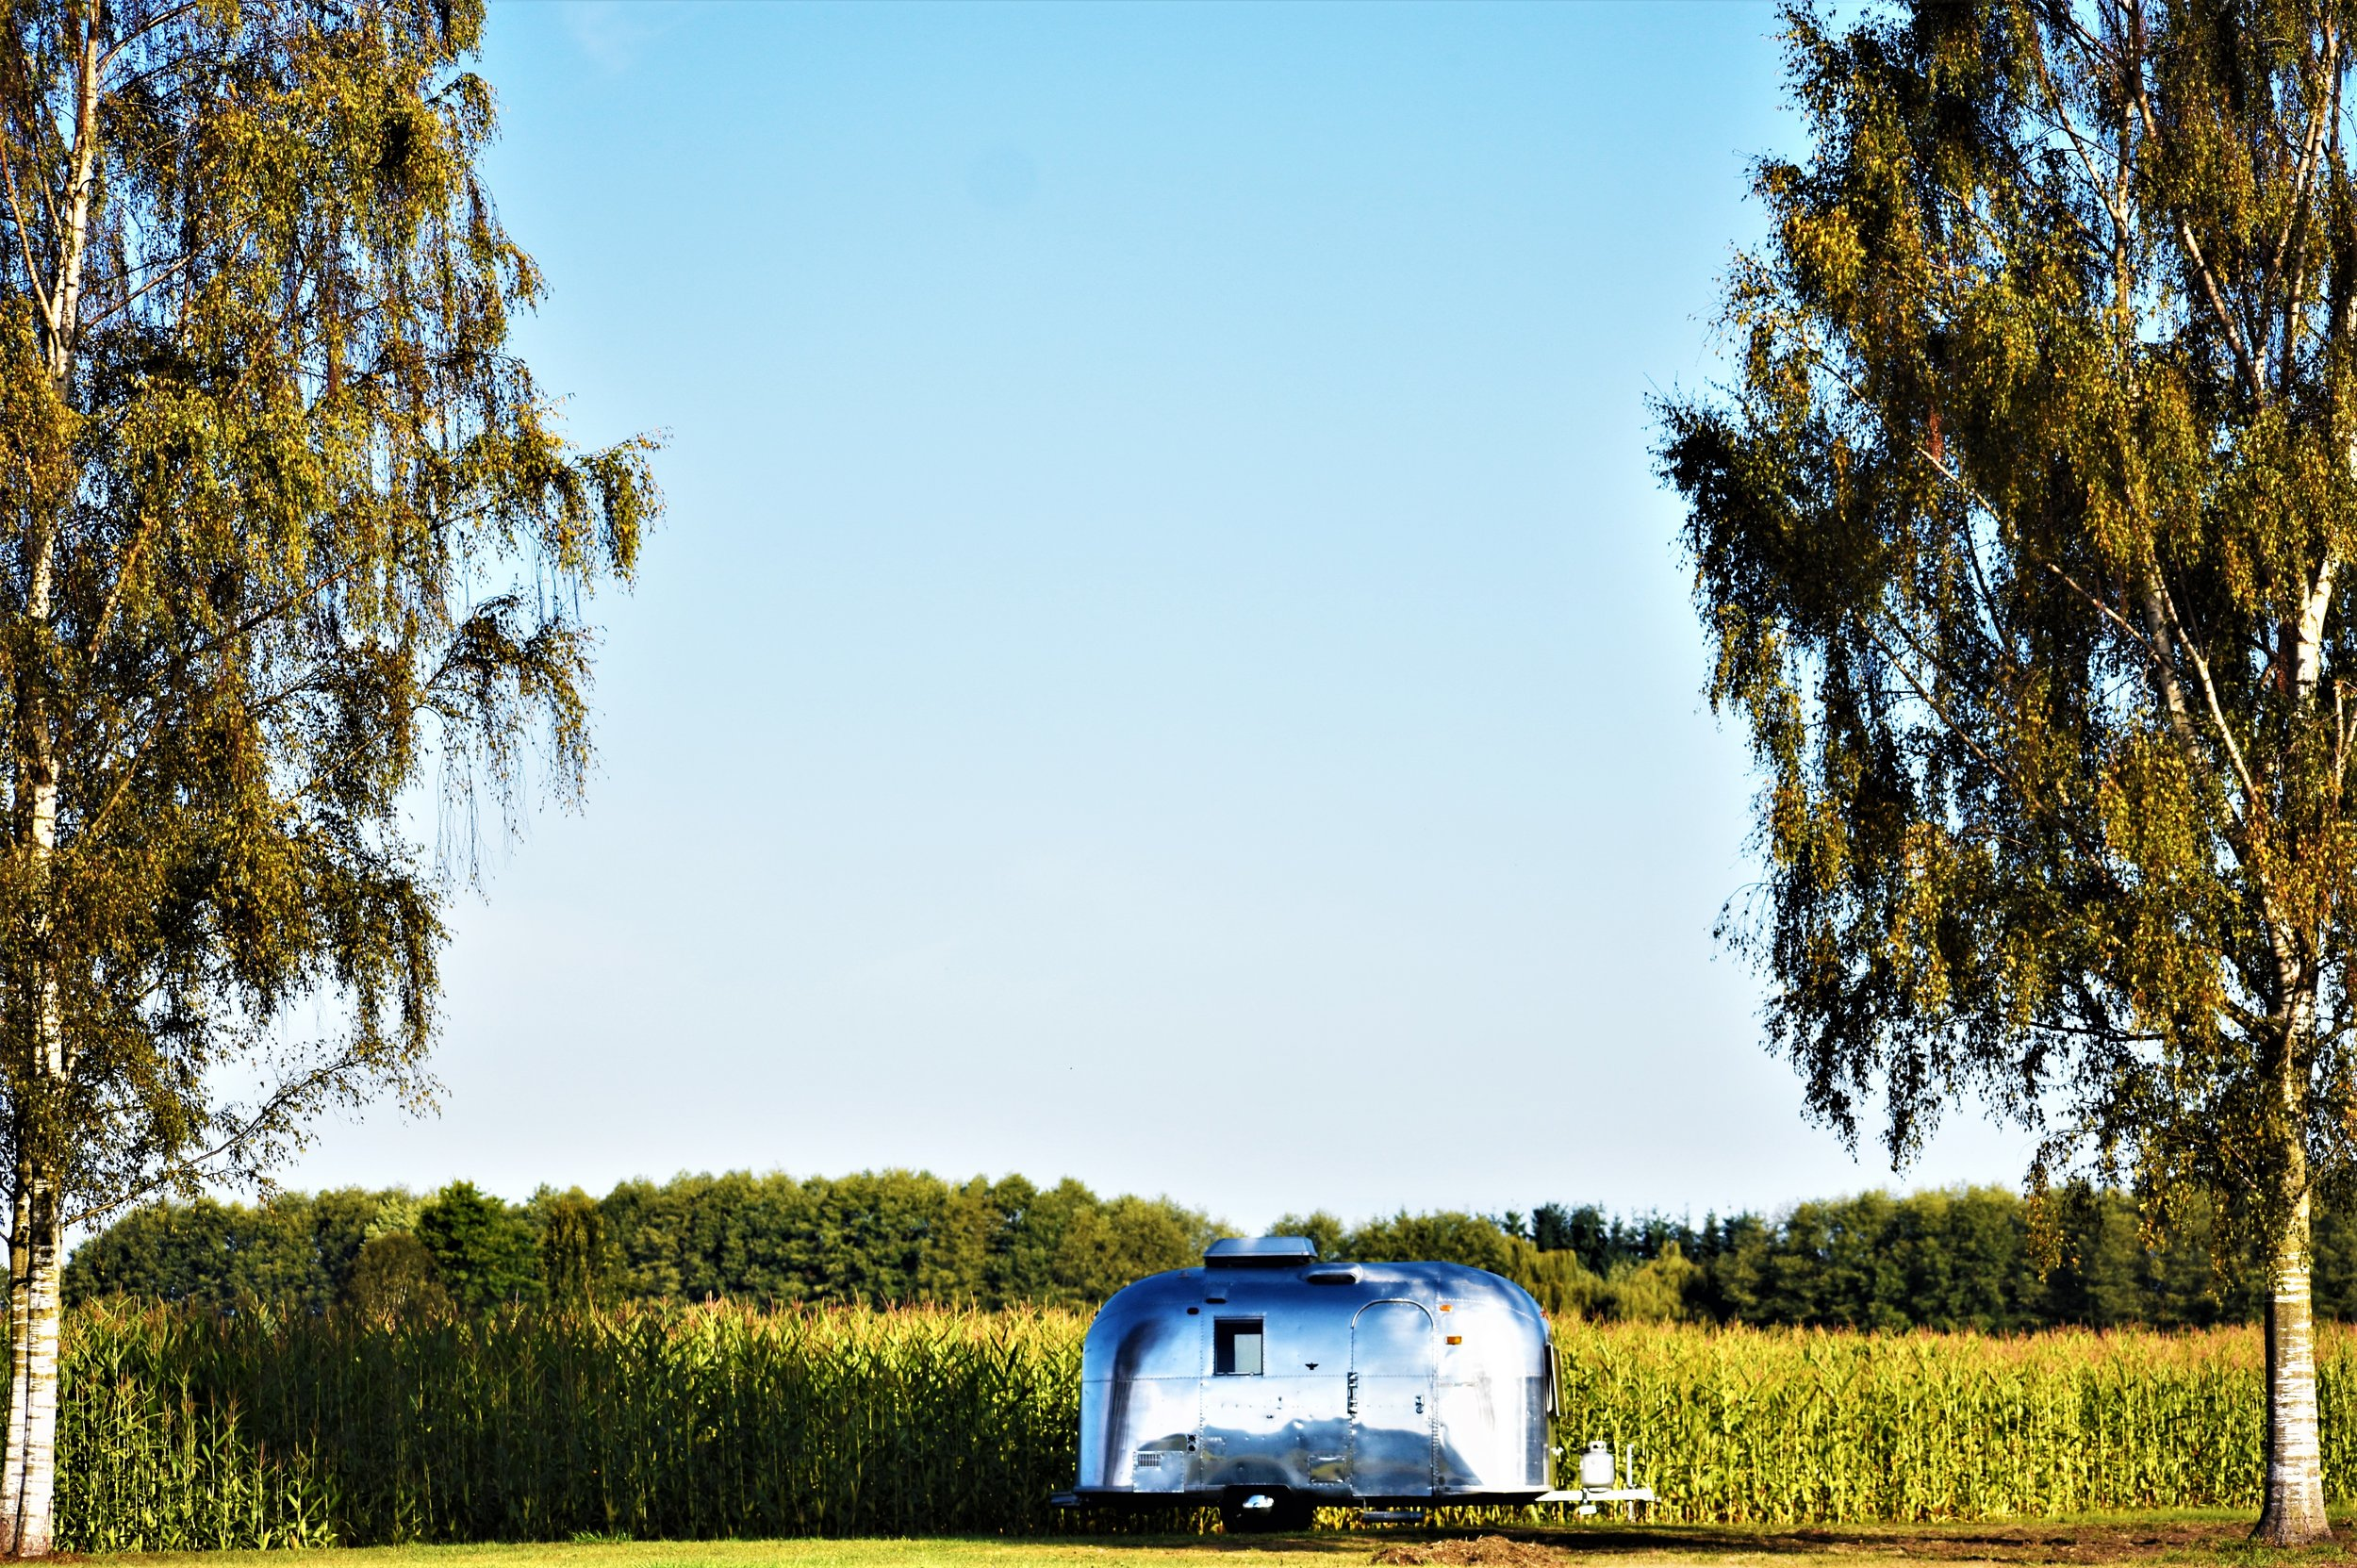 the birches and airstream in late summer amongst the corn crop